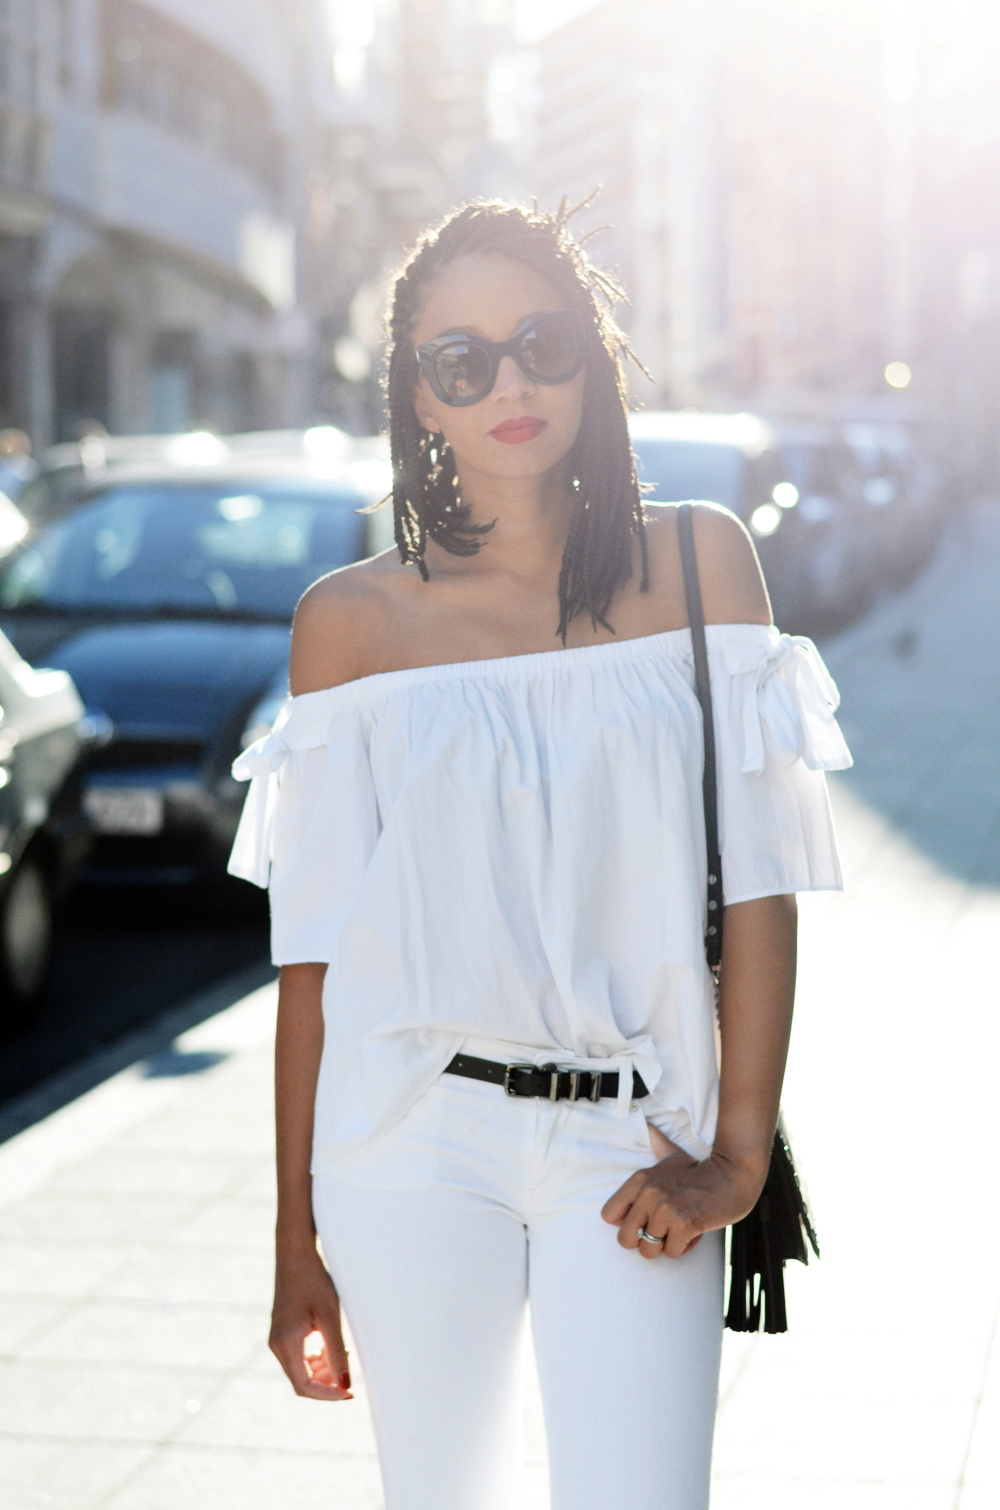 mercredie-blog-fashion-blogger-mode-geneve-suisse-santander-celine-marta-all-white-outfit-flare-elisabetta-franchetti-ceinture-kooples2